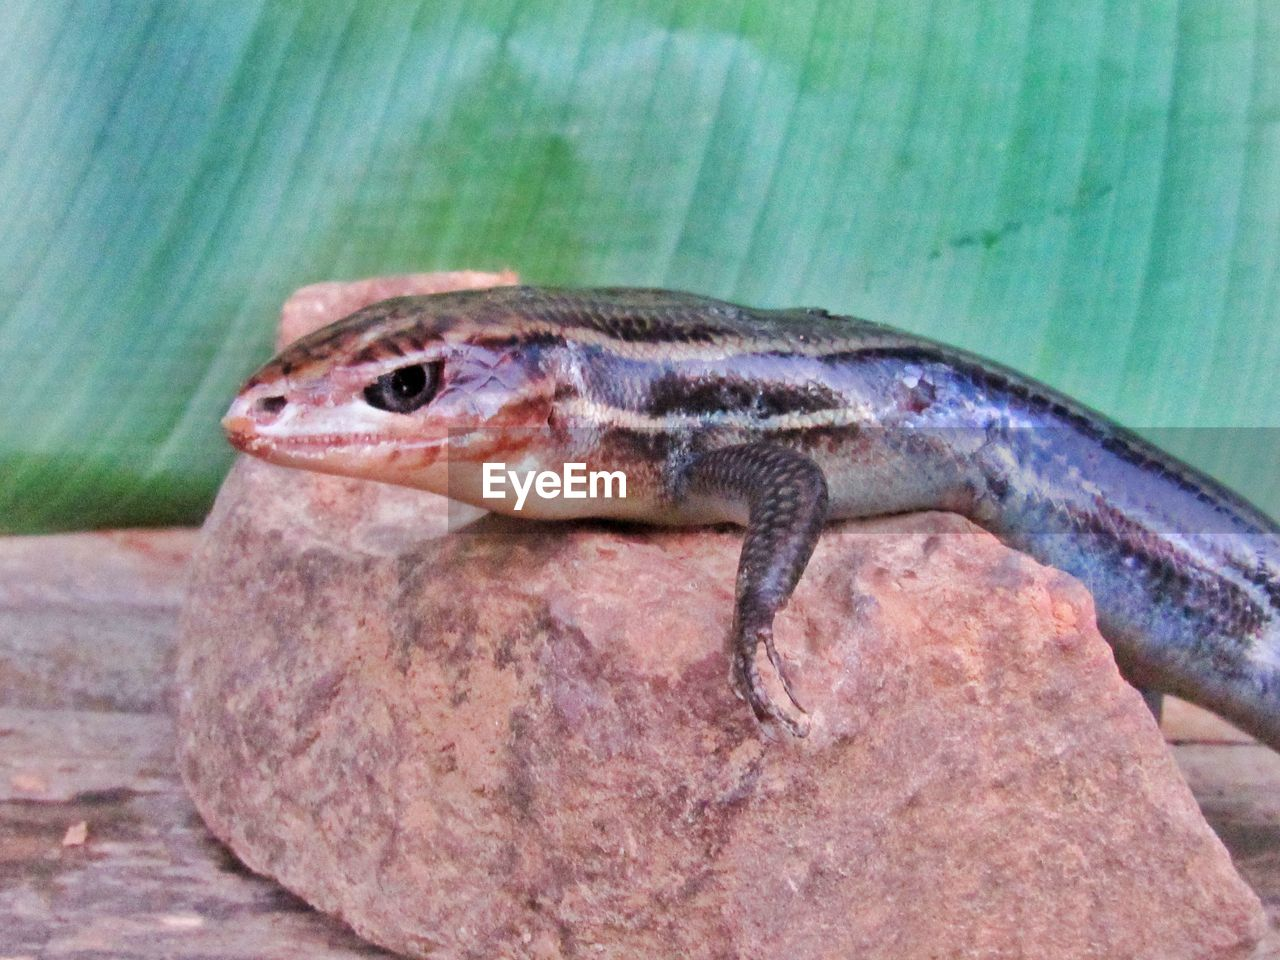 animal, animal themes, one animal, vertebrate, reptile, animal wildlife, animals in the wild, lizard, close-up, no people, day, outdoors, solid, nature, rock - object, rock, animal body part, focus on foreground, looking, side view, animal head, animal scale